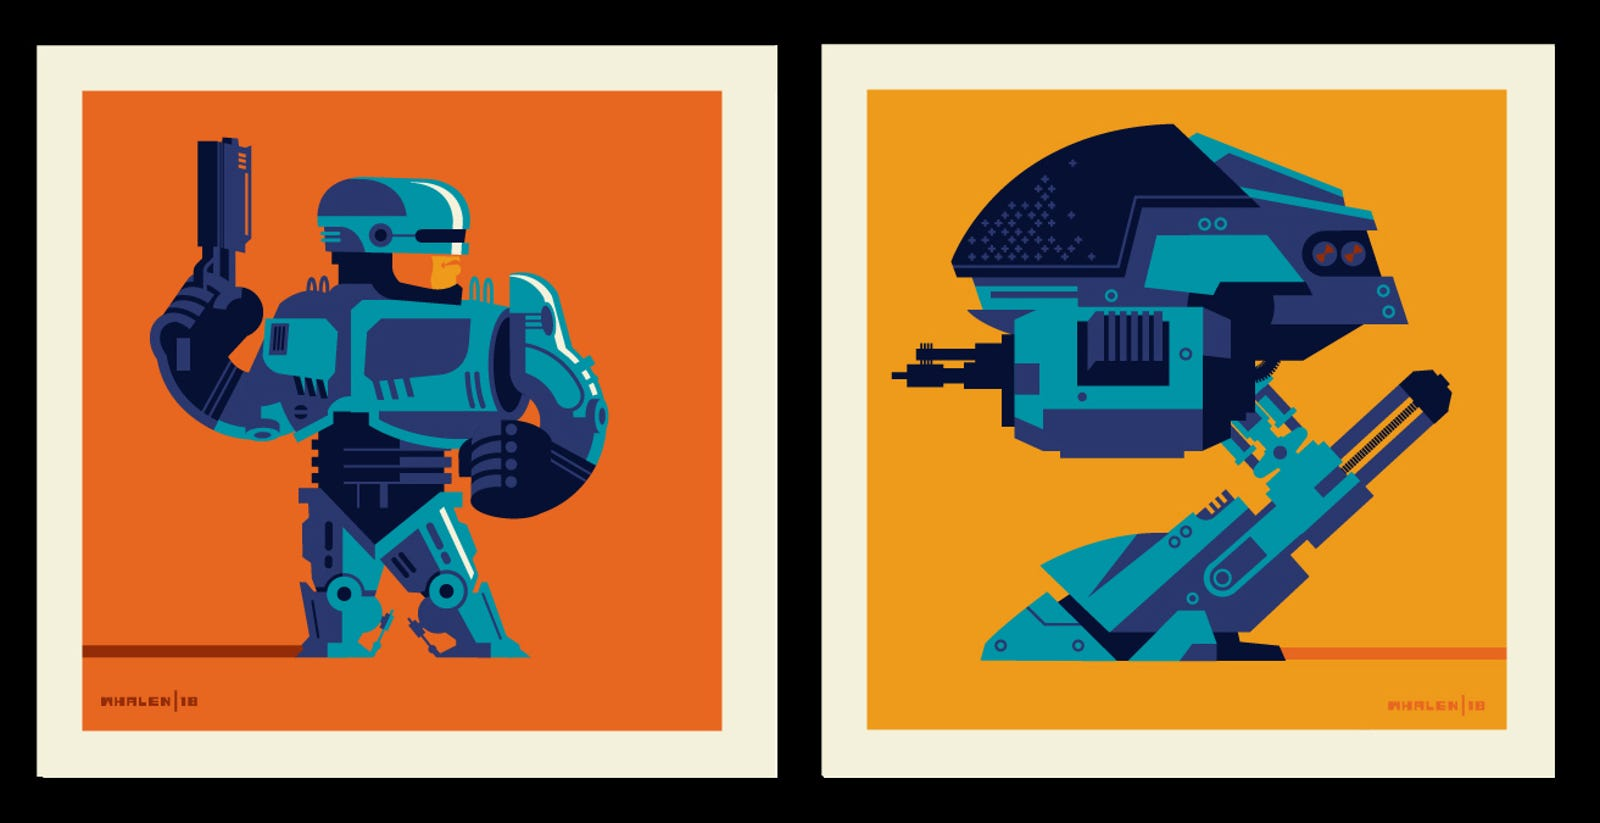 Robocop vs. ED 209 by Tom Whalen